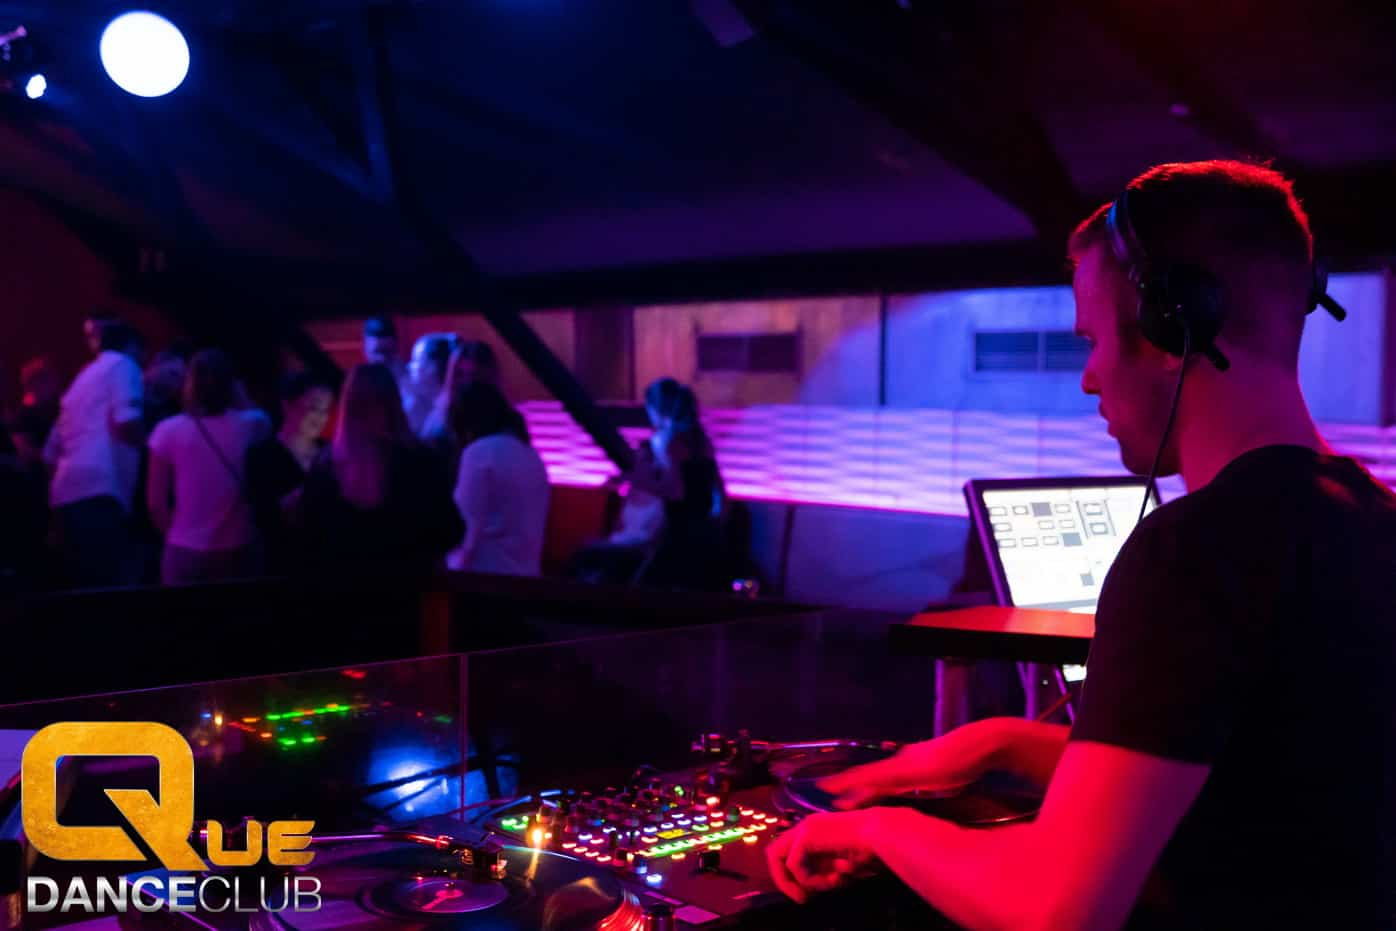 2018_12_25_Que_Danceclub_Engels_Nacht_2018_Nightlife_Scene_Timo_021